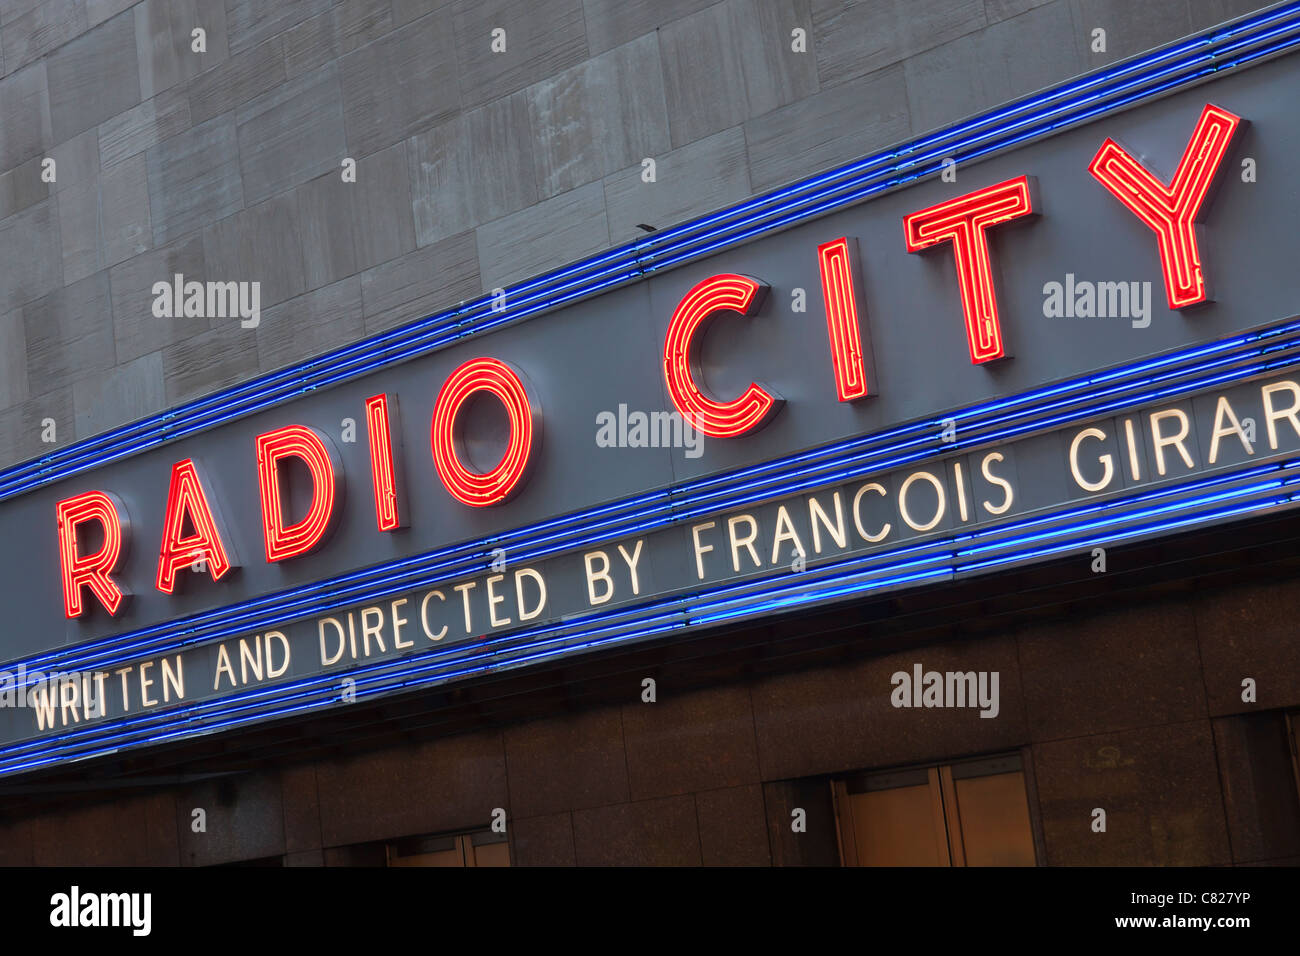 A neon sign at Radio City Music Hall in New York City. - Stock Image